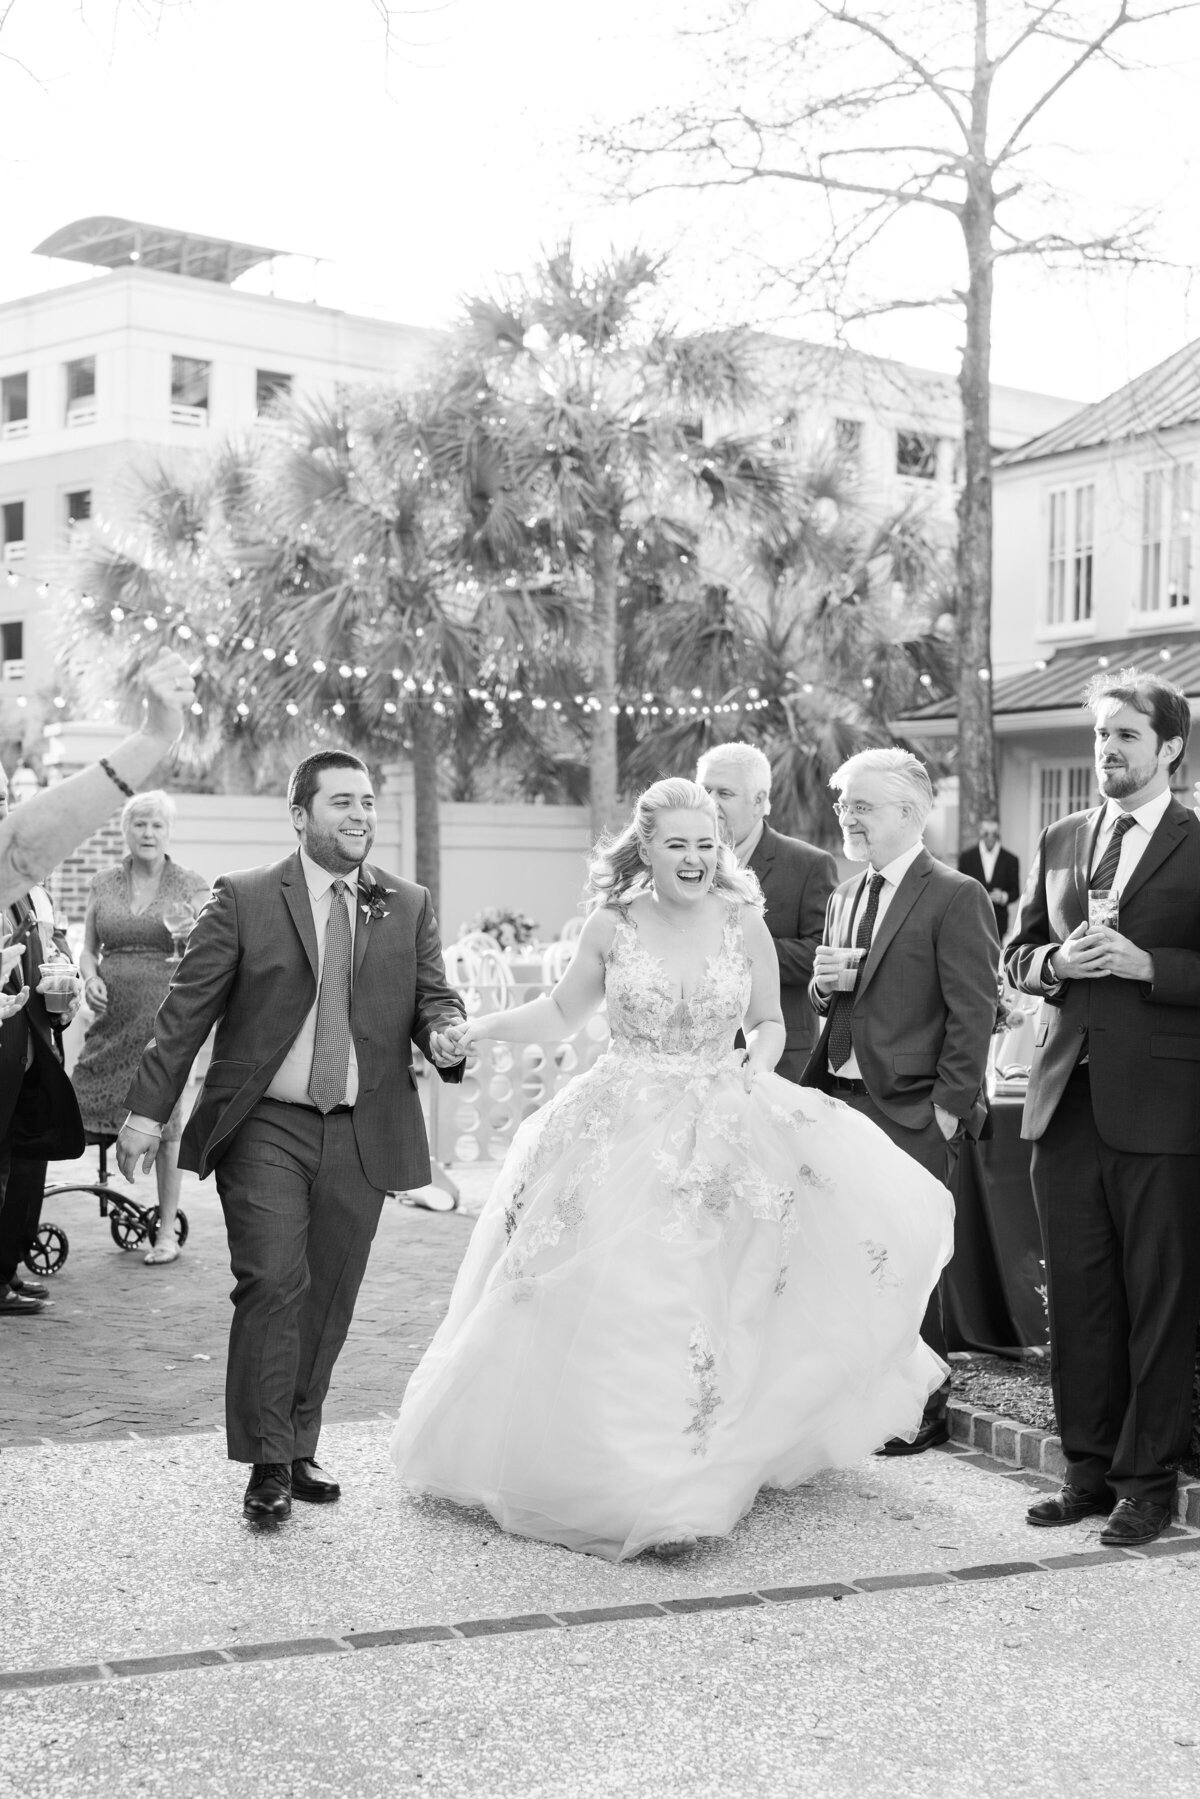 ColorfulGadsdenHouseDowntownCharlestonWedding-106